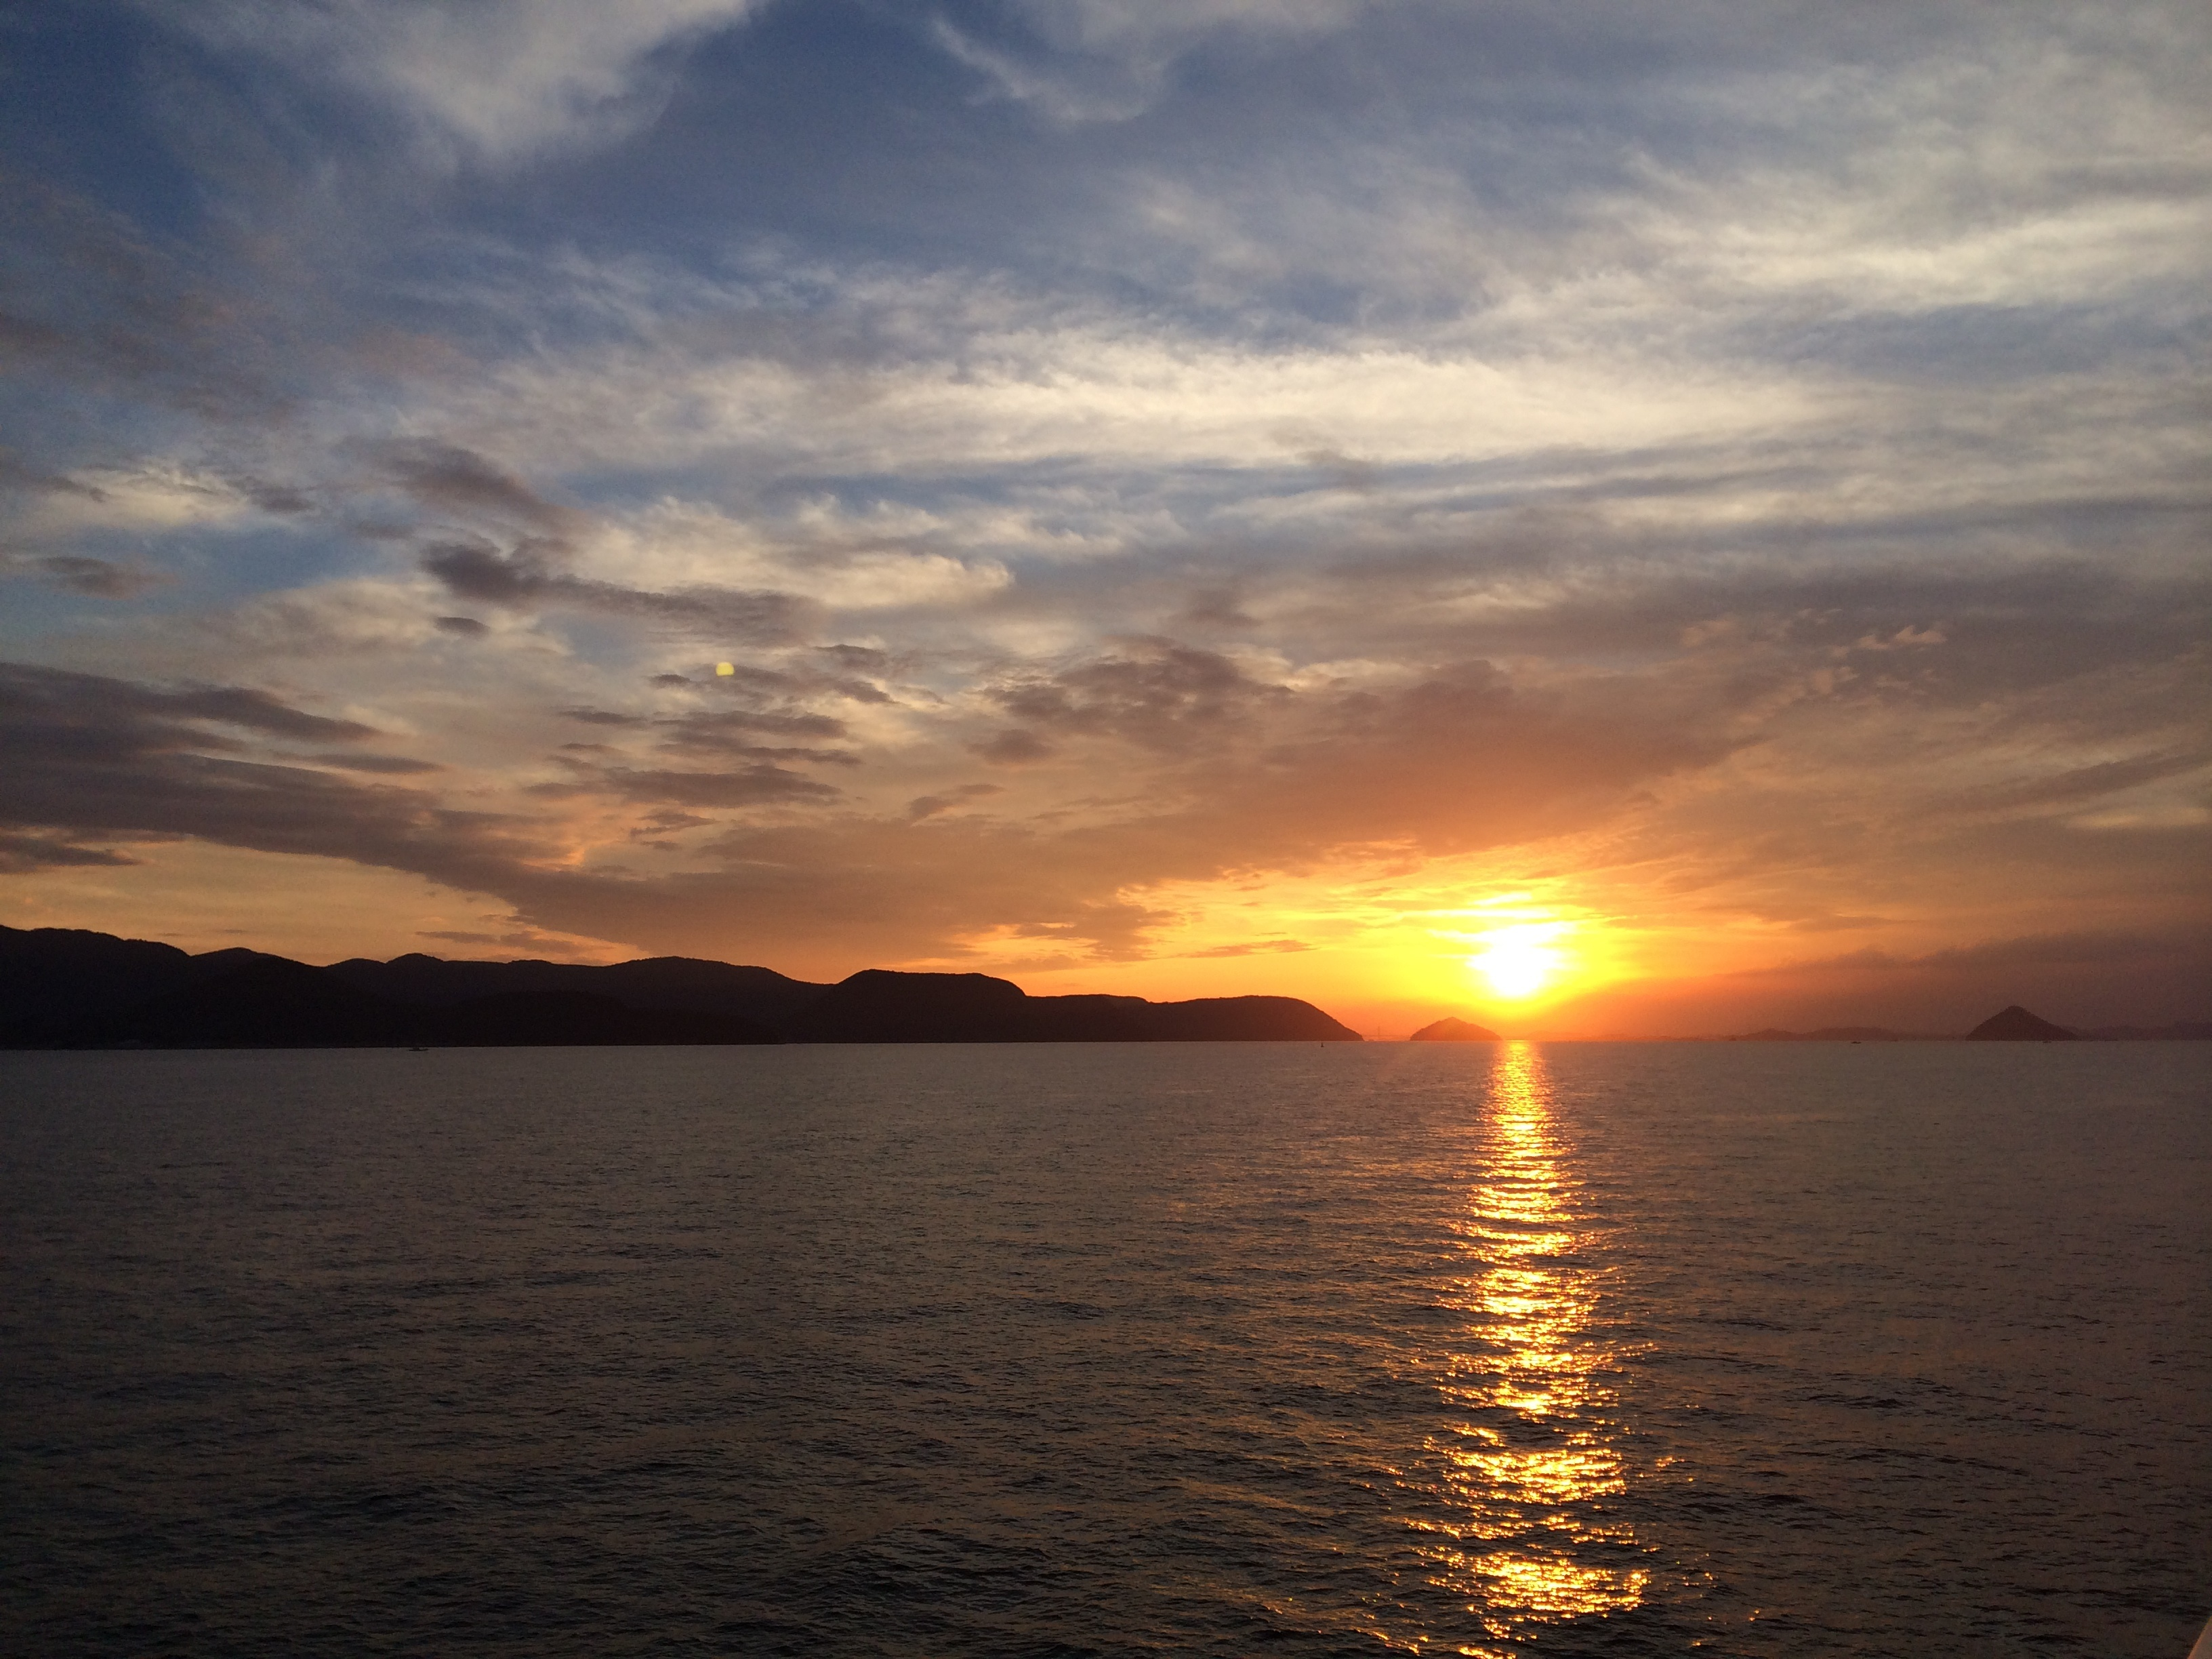 The summer sun sets over the Seto Inland Sea, taken from the ferry